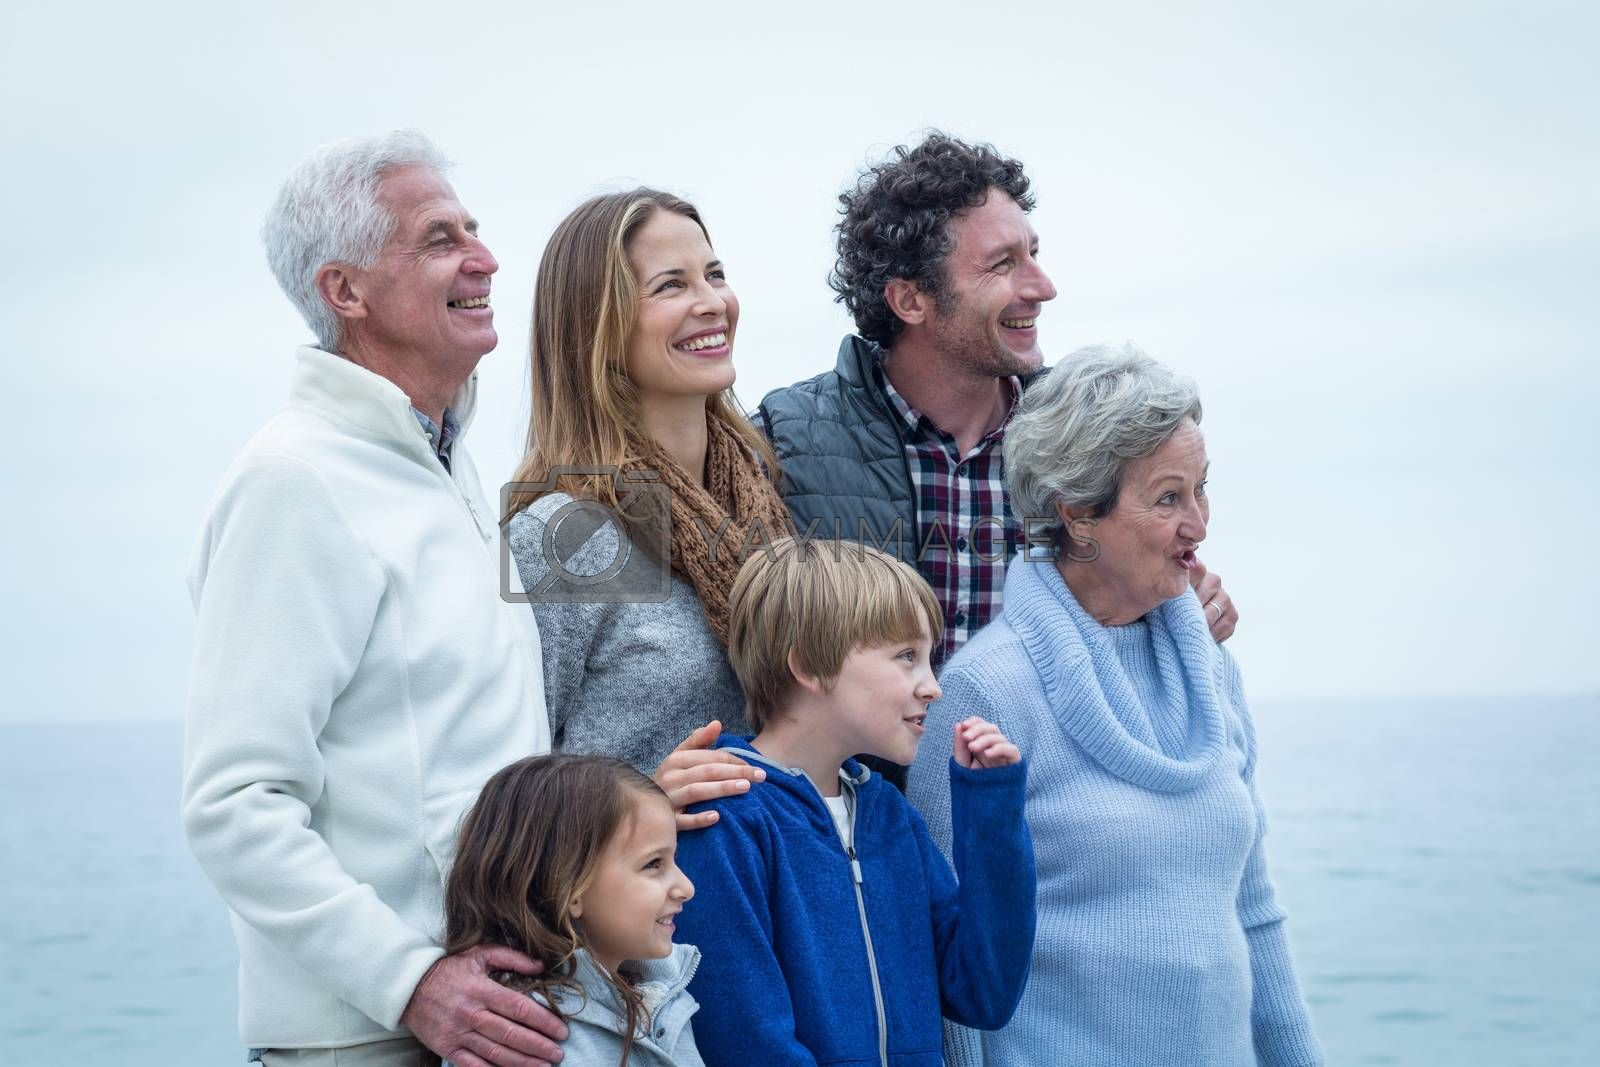 Cheerful family looking away at beach against sky